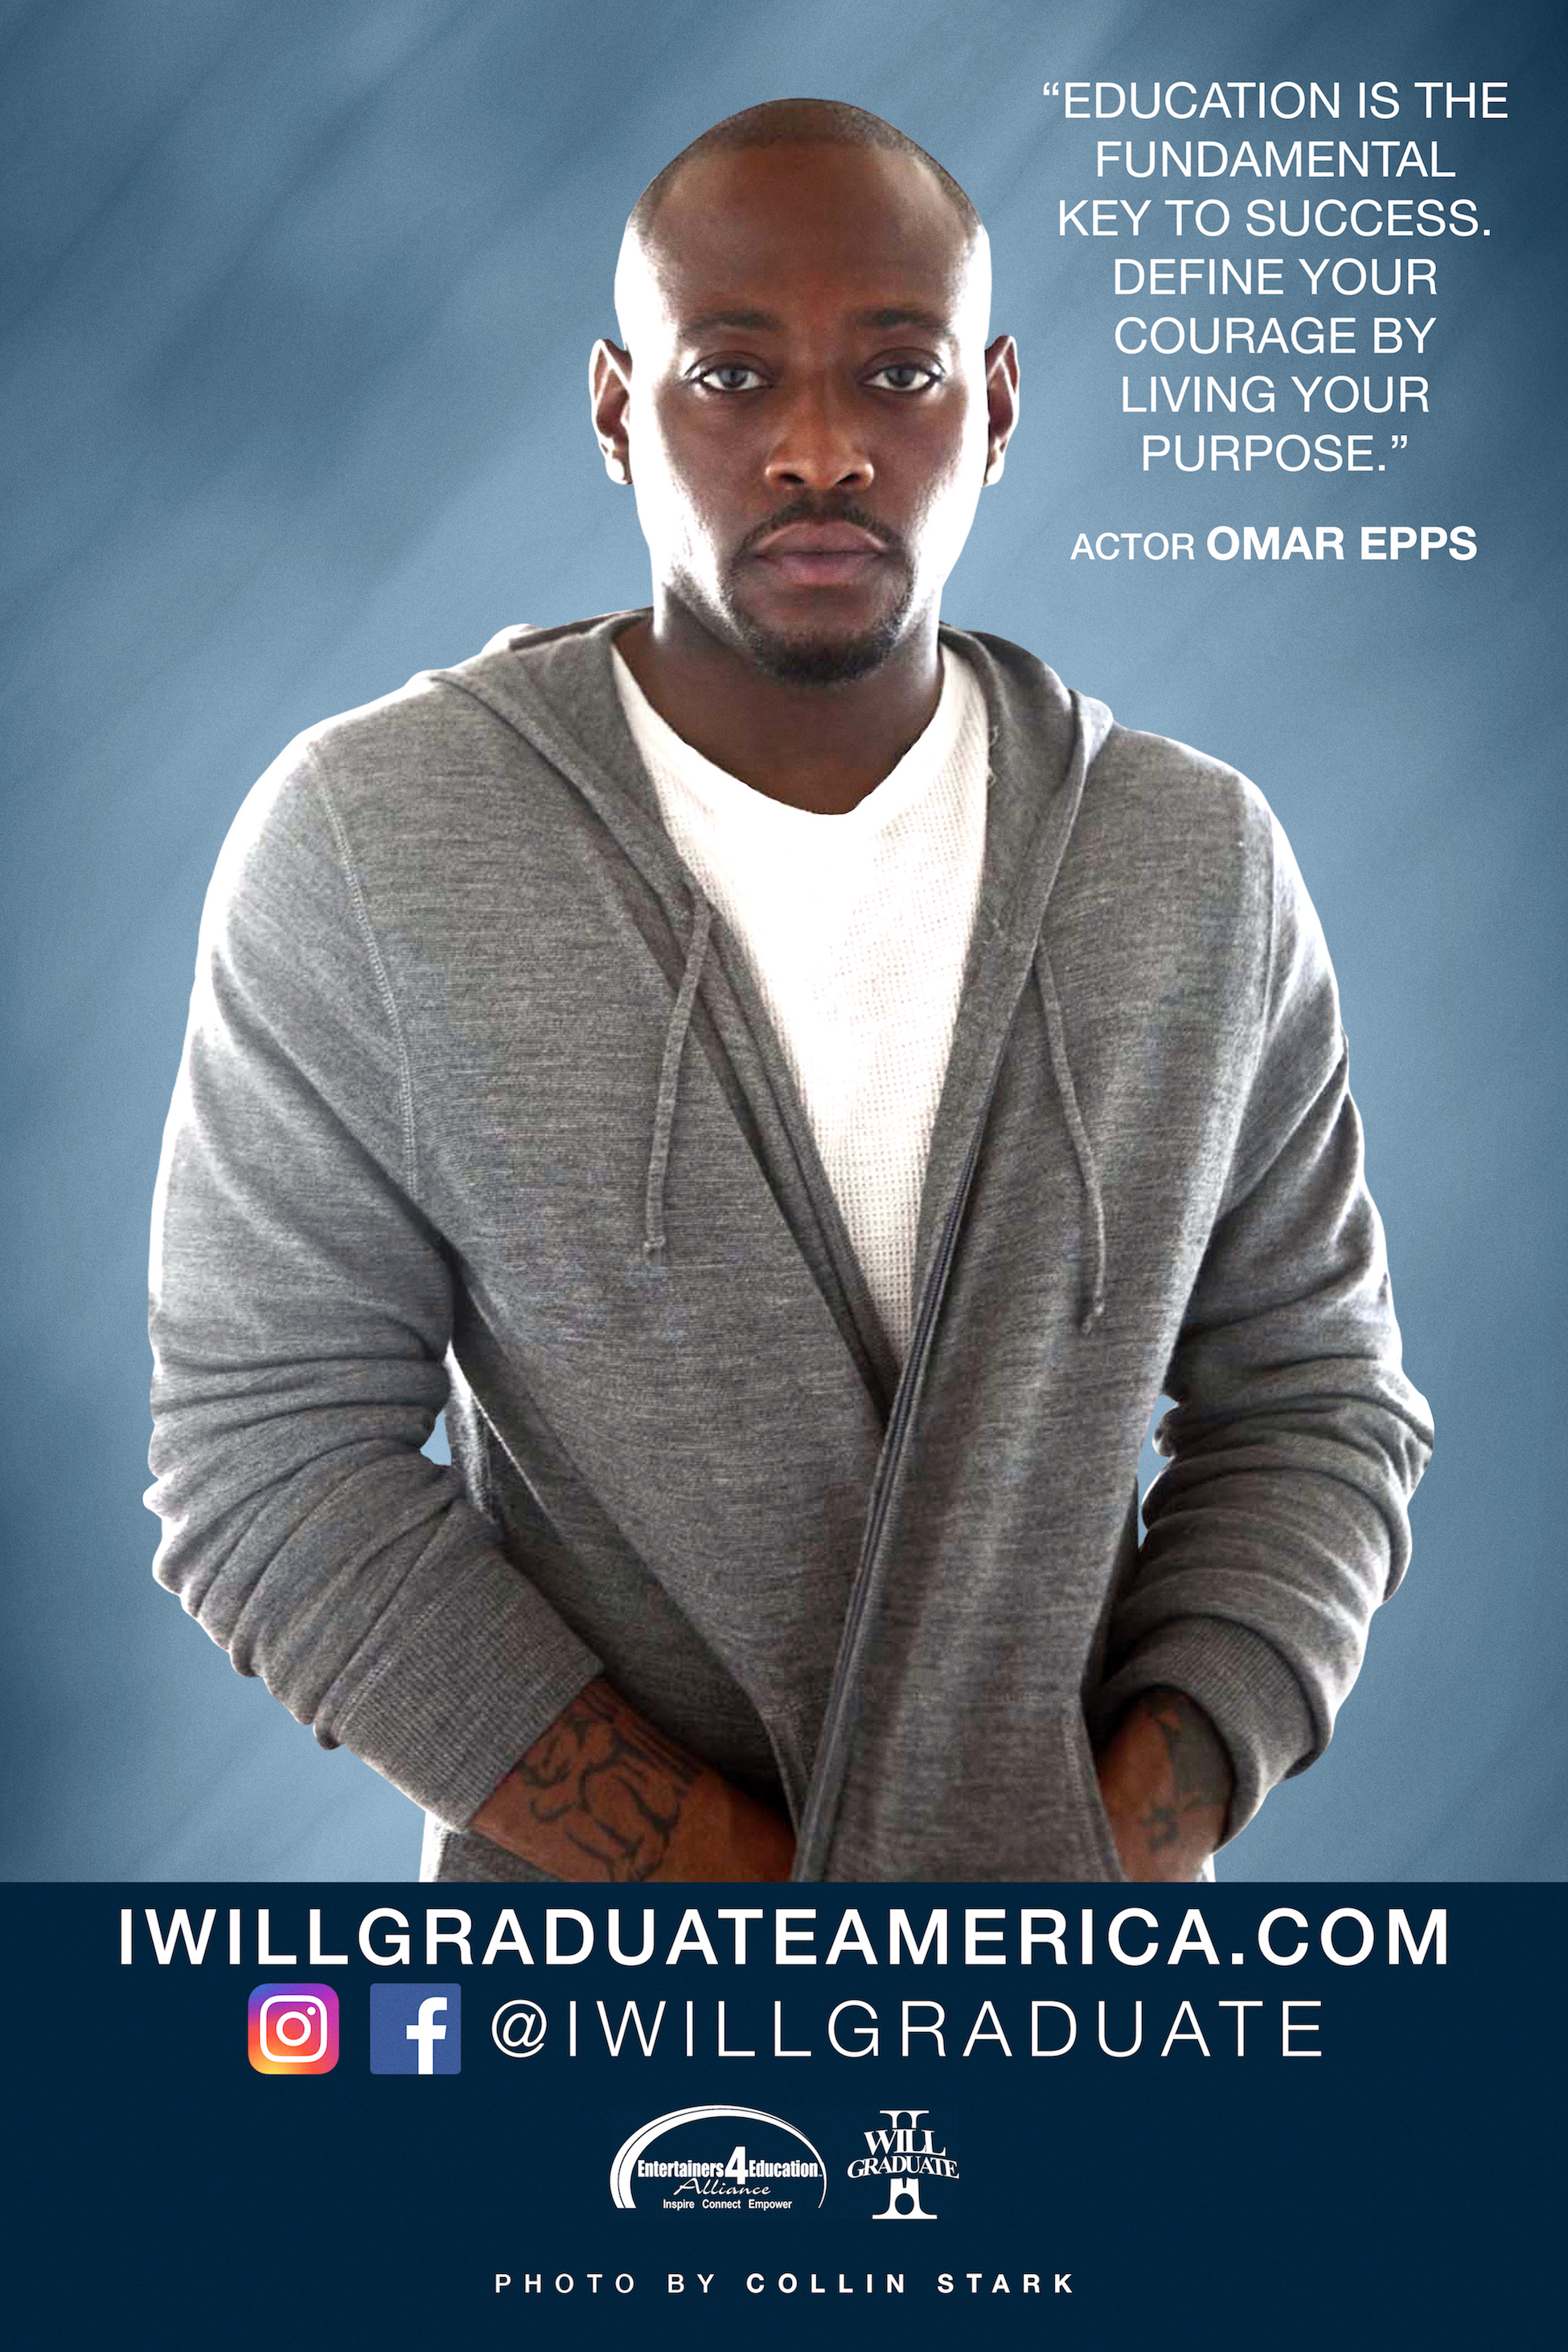 2019 I WILL GRADUATEPOSTER CAMPAIGN - Click link below to watch poster launch event.